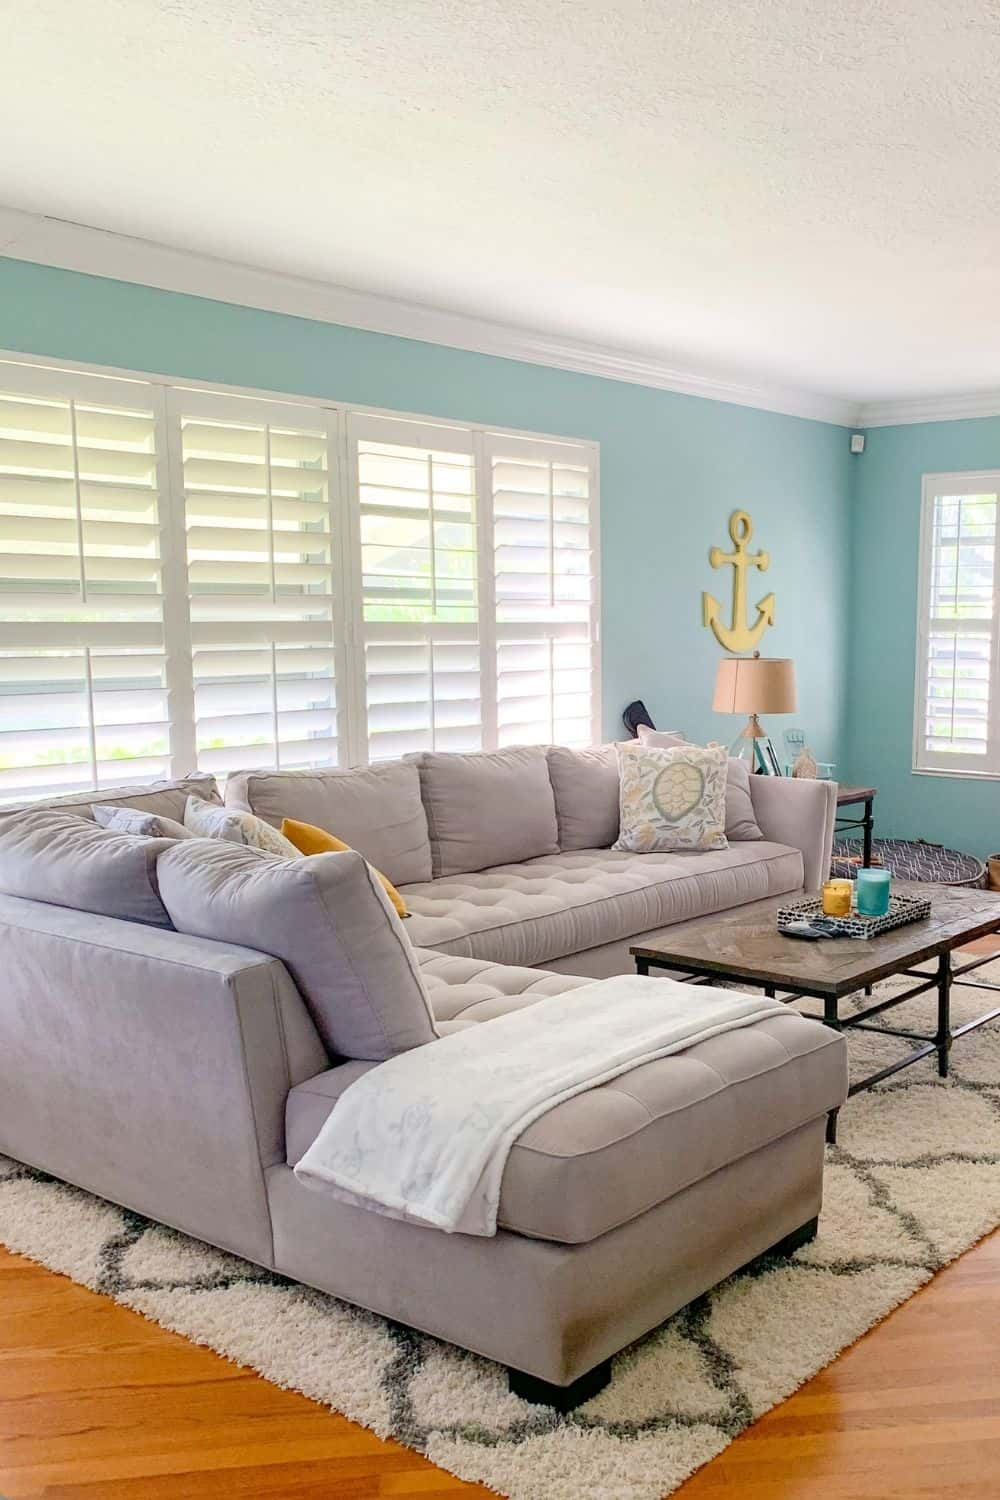 Coastal living room with beachy blue walls and gray couch - yellow accents - living room color ideas